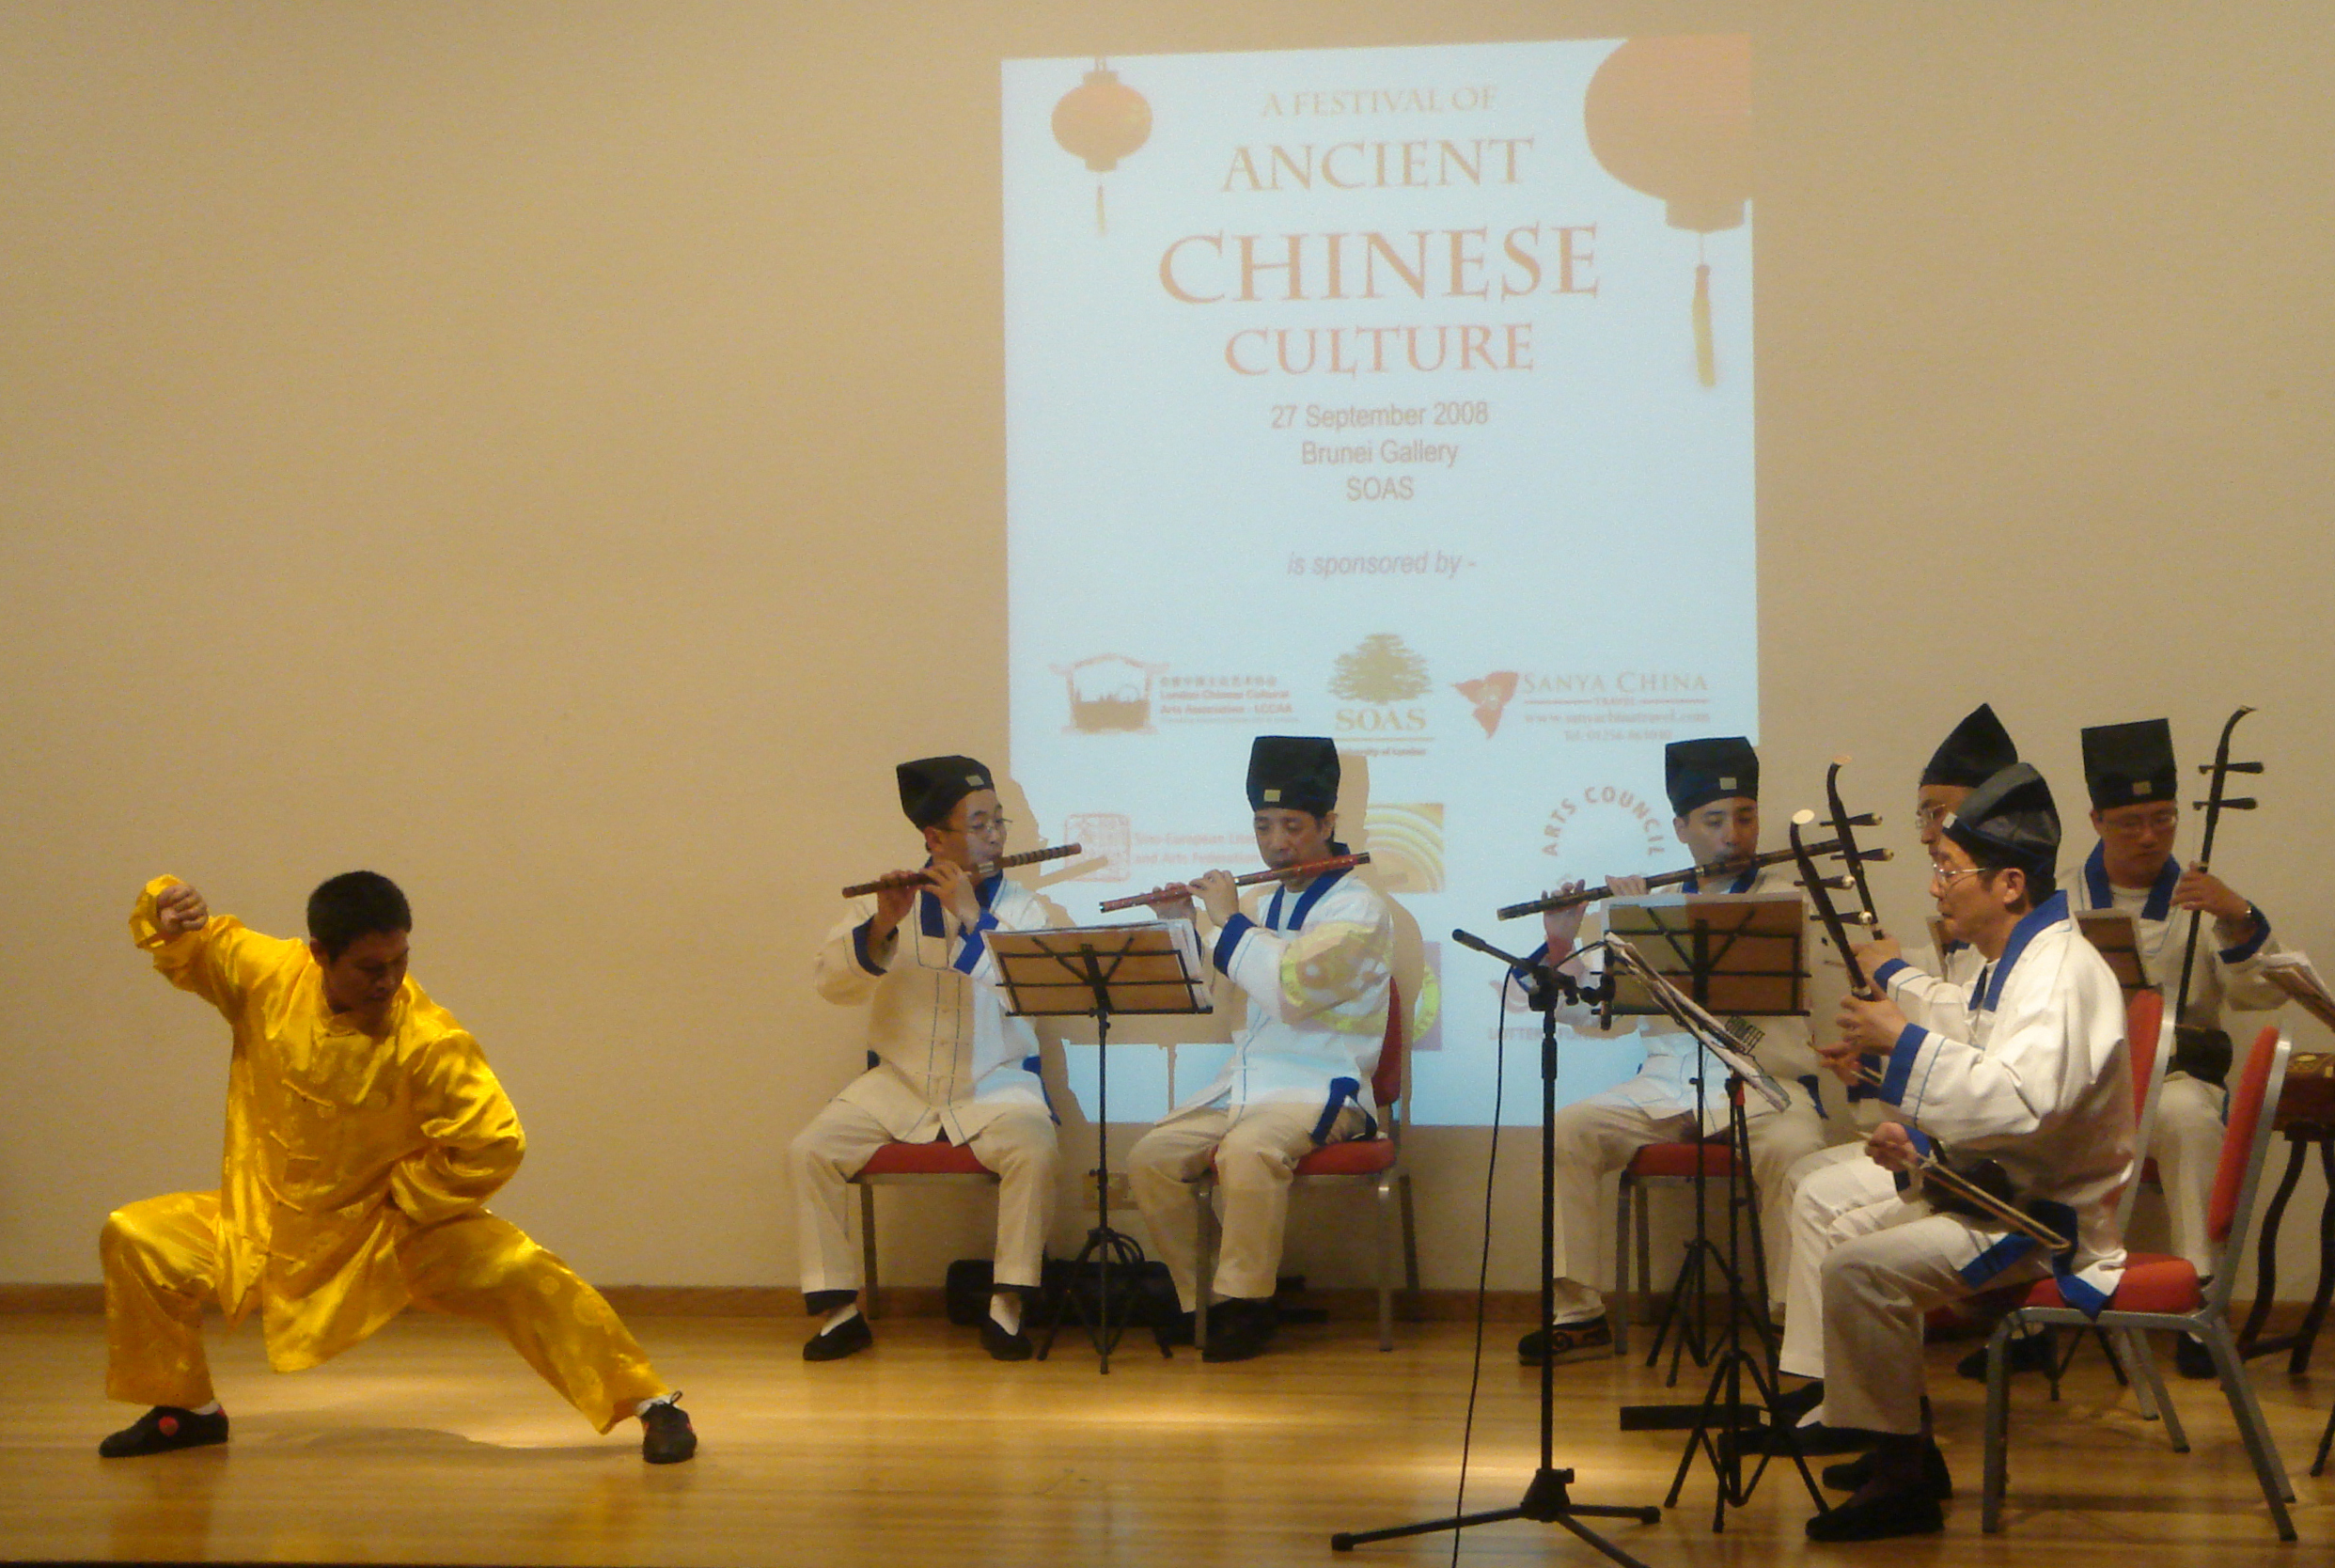 Shifu Liu performs tai ji accompanied by a Doaist Orchestra playing ancient Chinense instruments